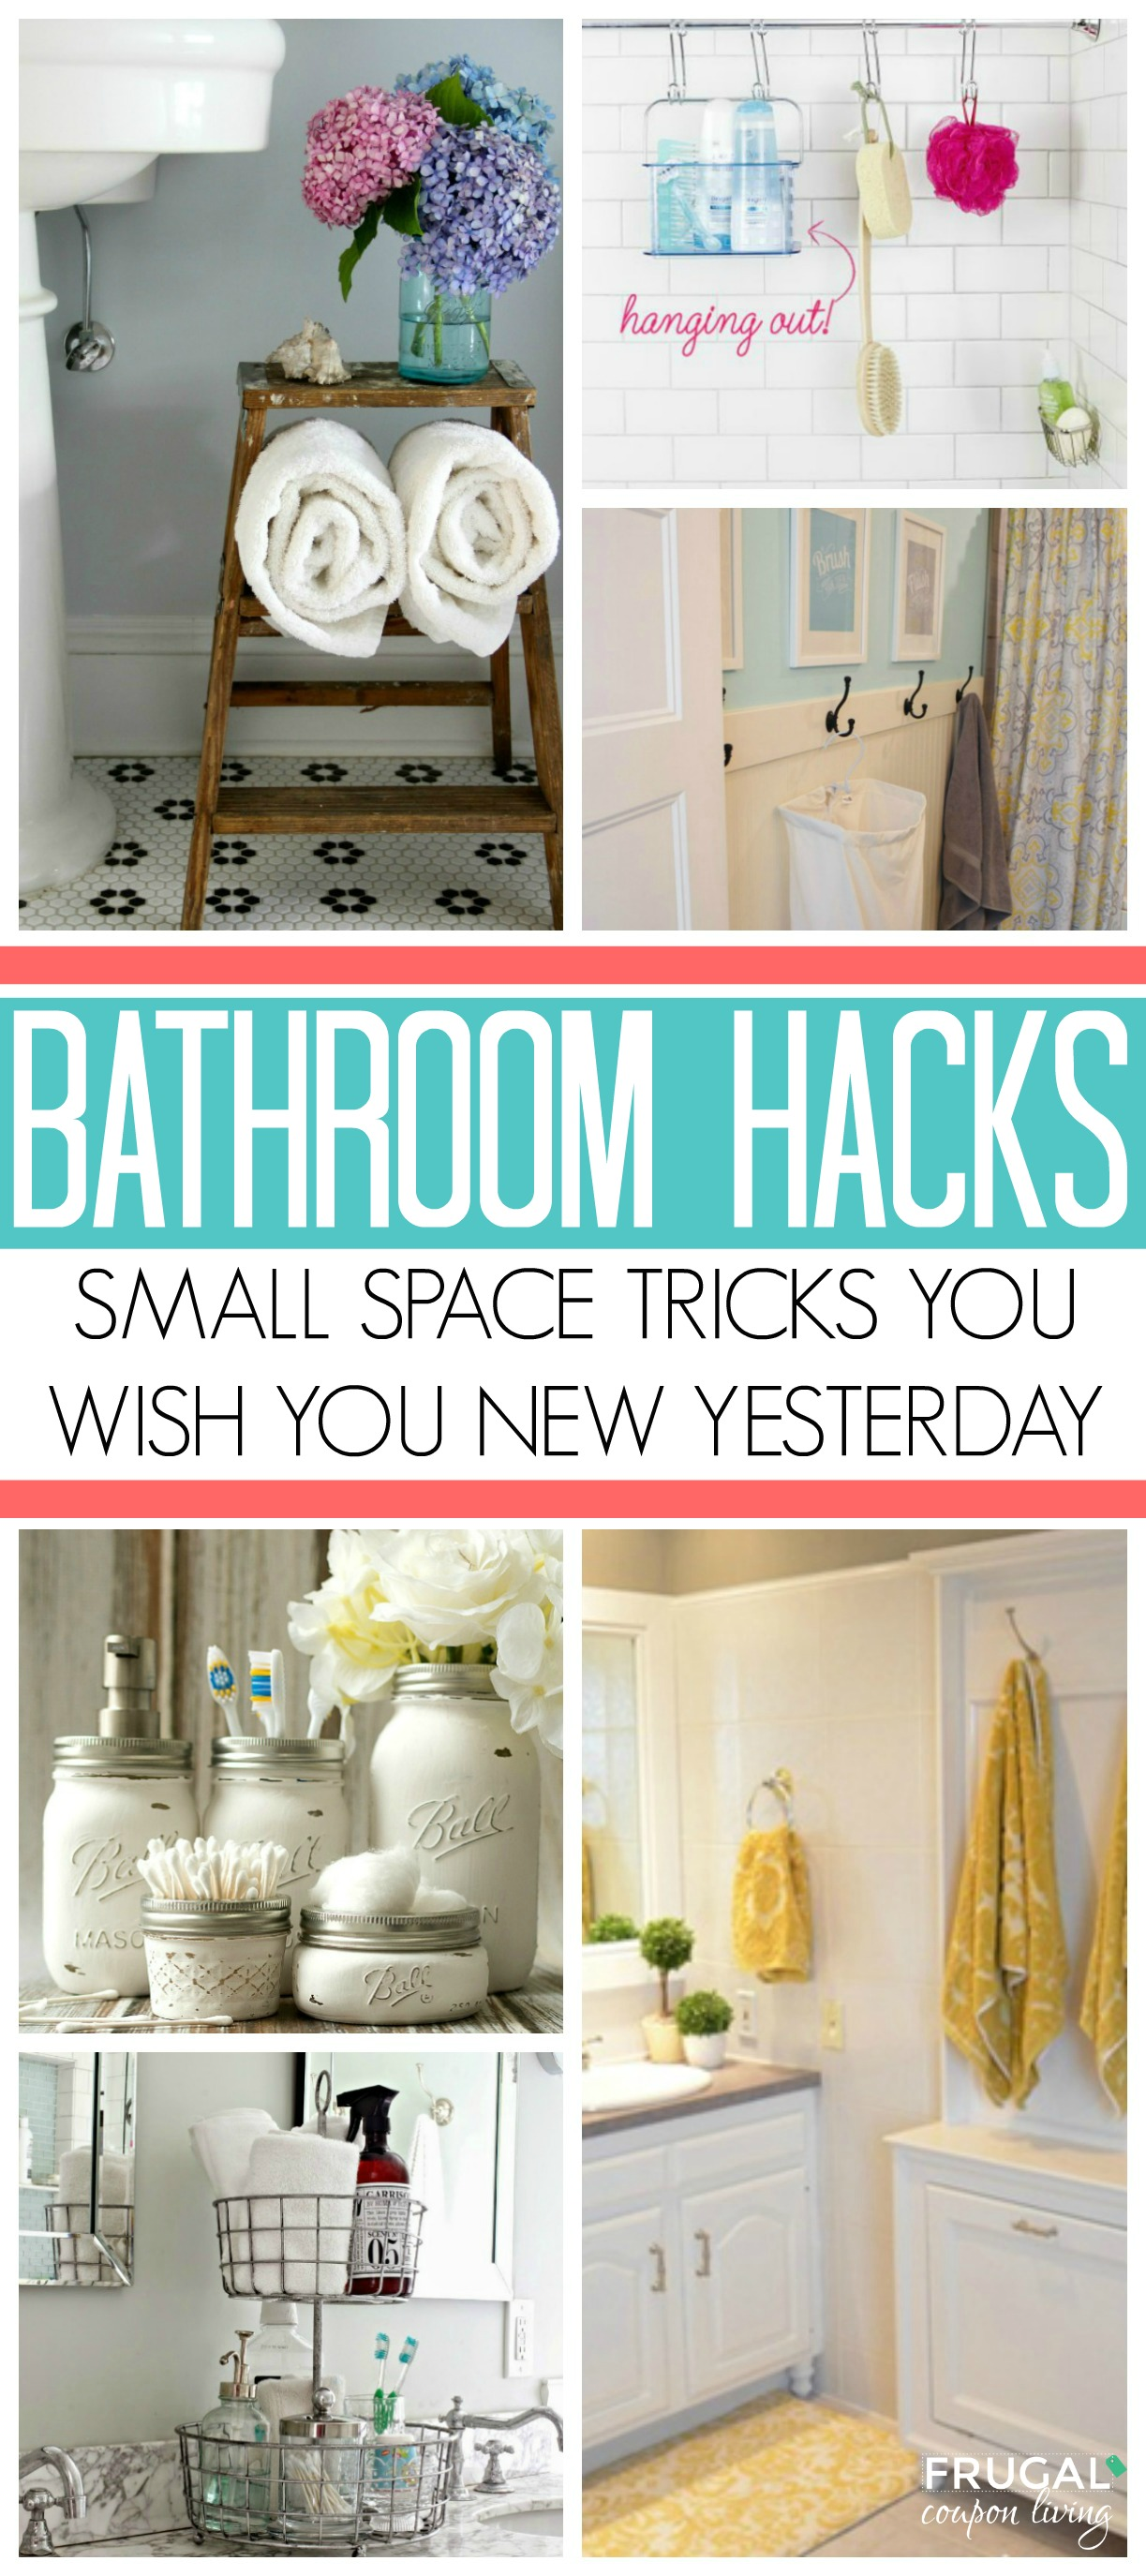 Bathroom storage solutions small space hacks tricks Storage solutions for tiny bathrooms